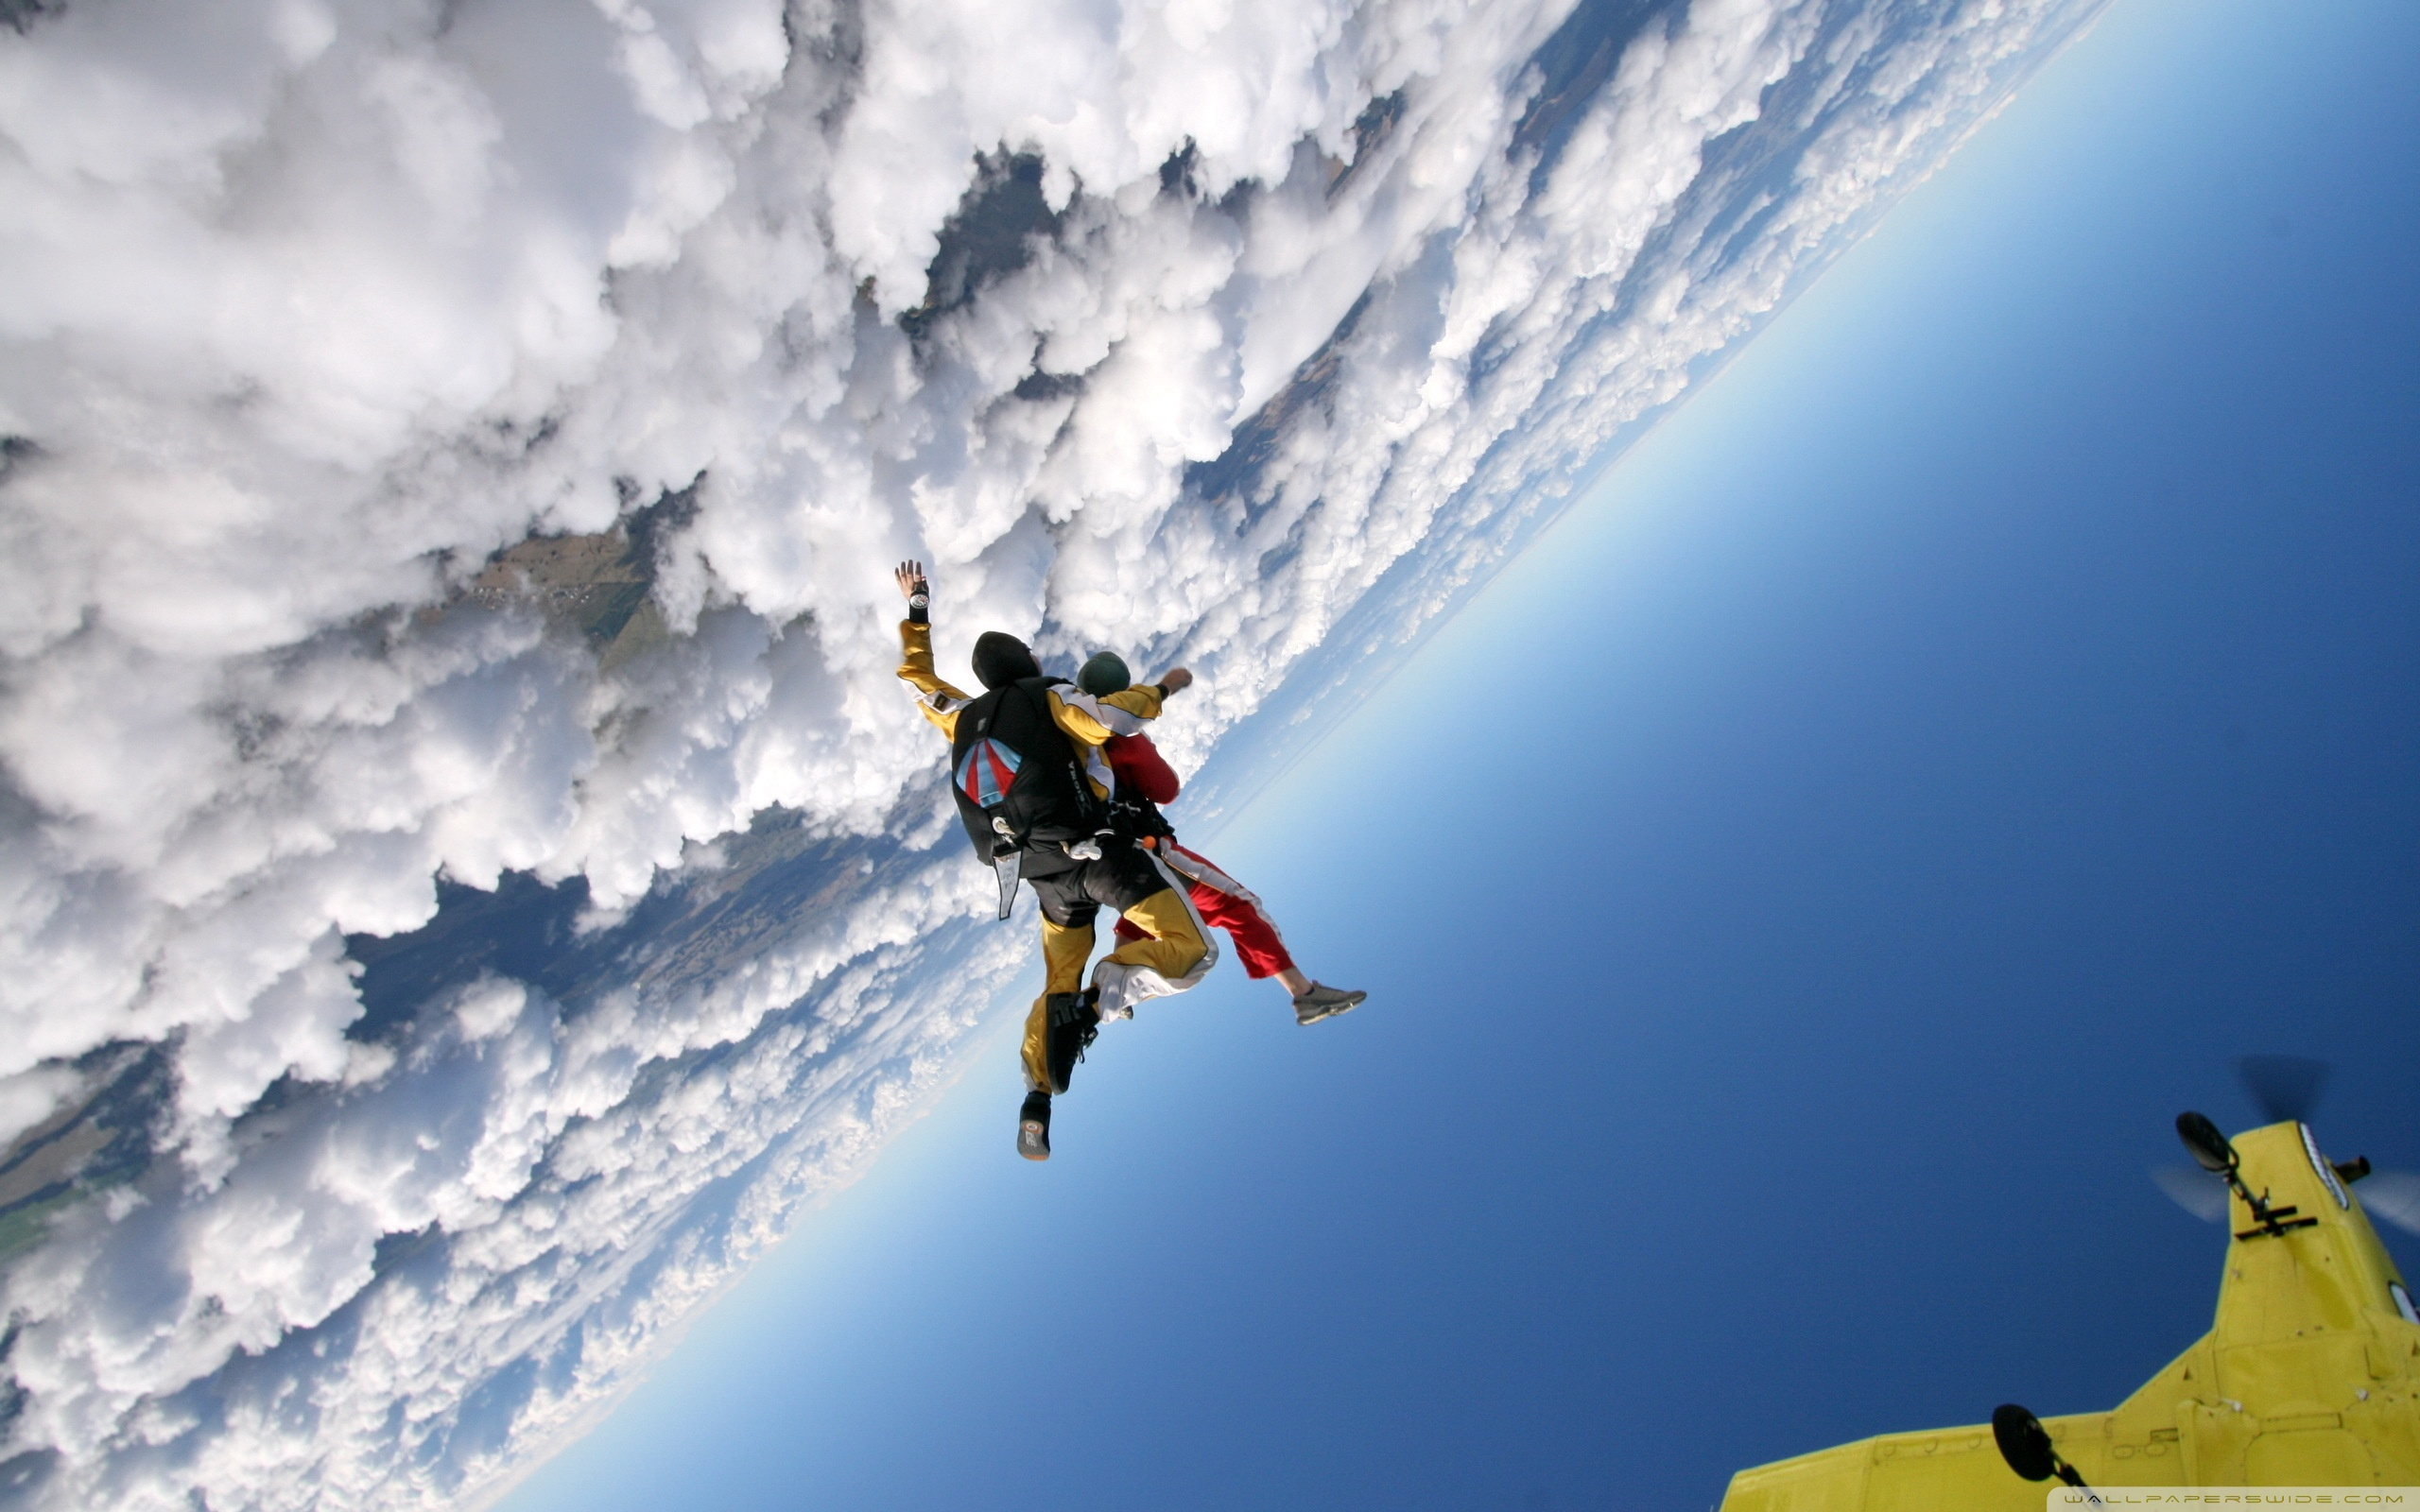 2560x1600 - Skydiving Wallpapers 8